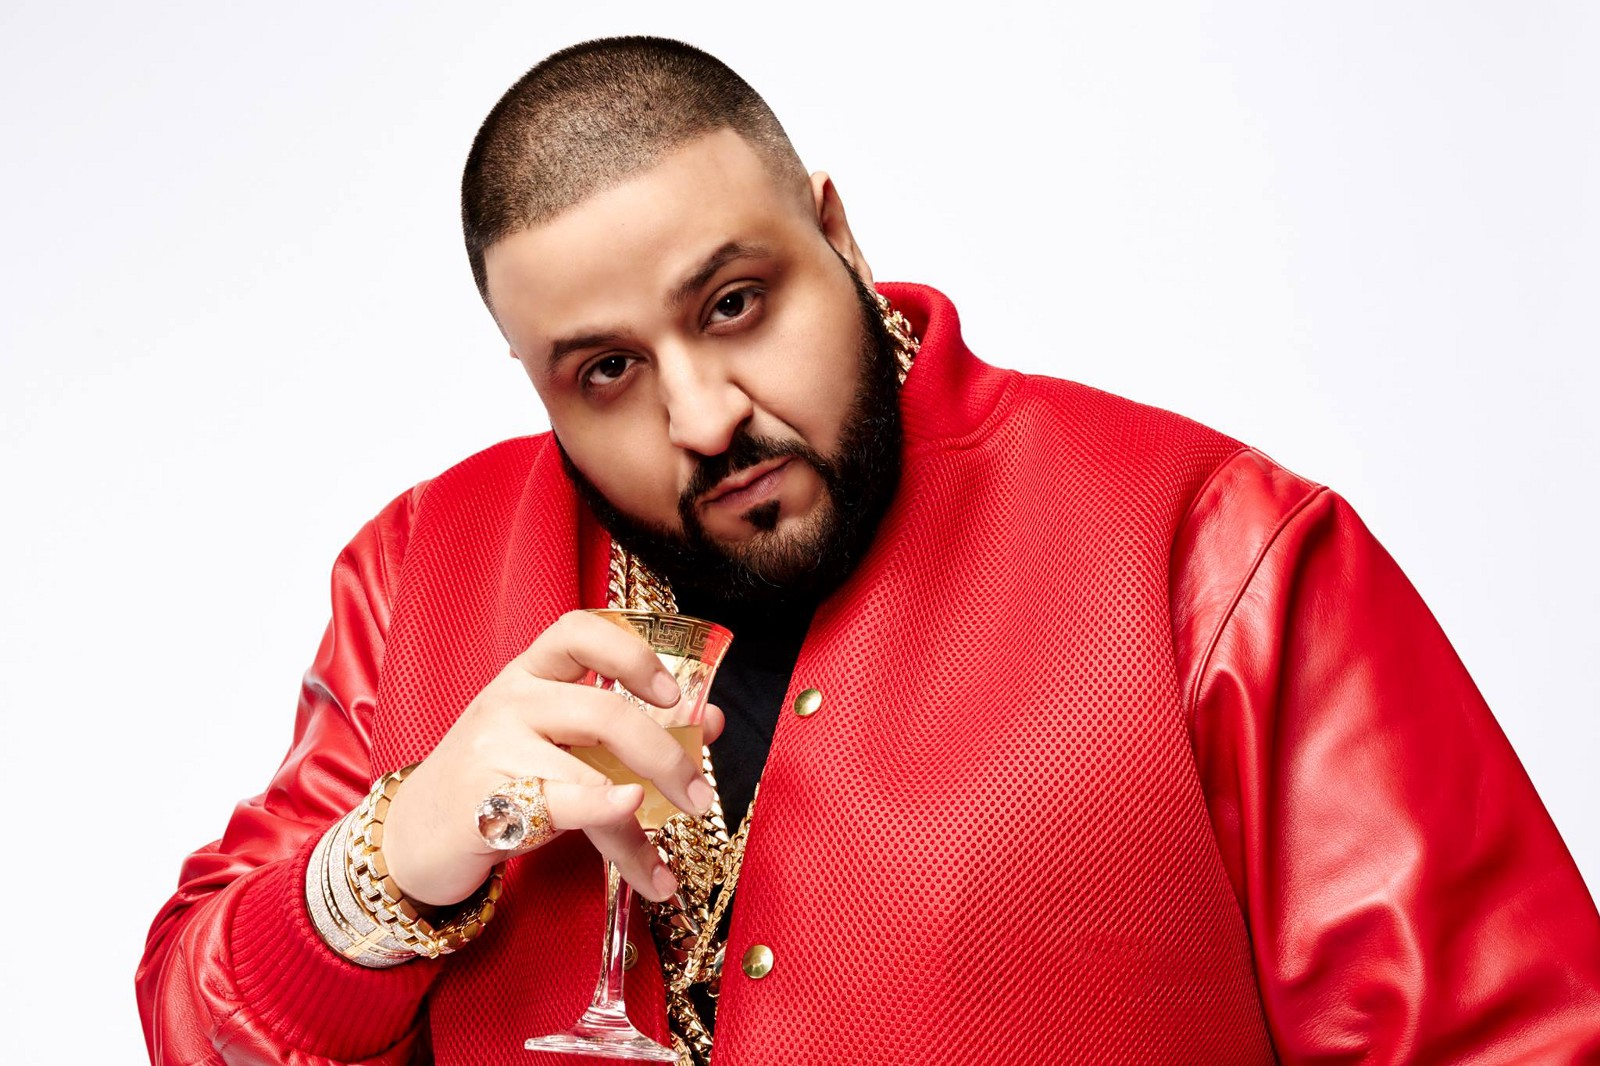 DJ Khaled's Father of Asahd album release date and more